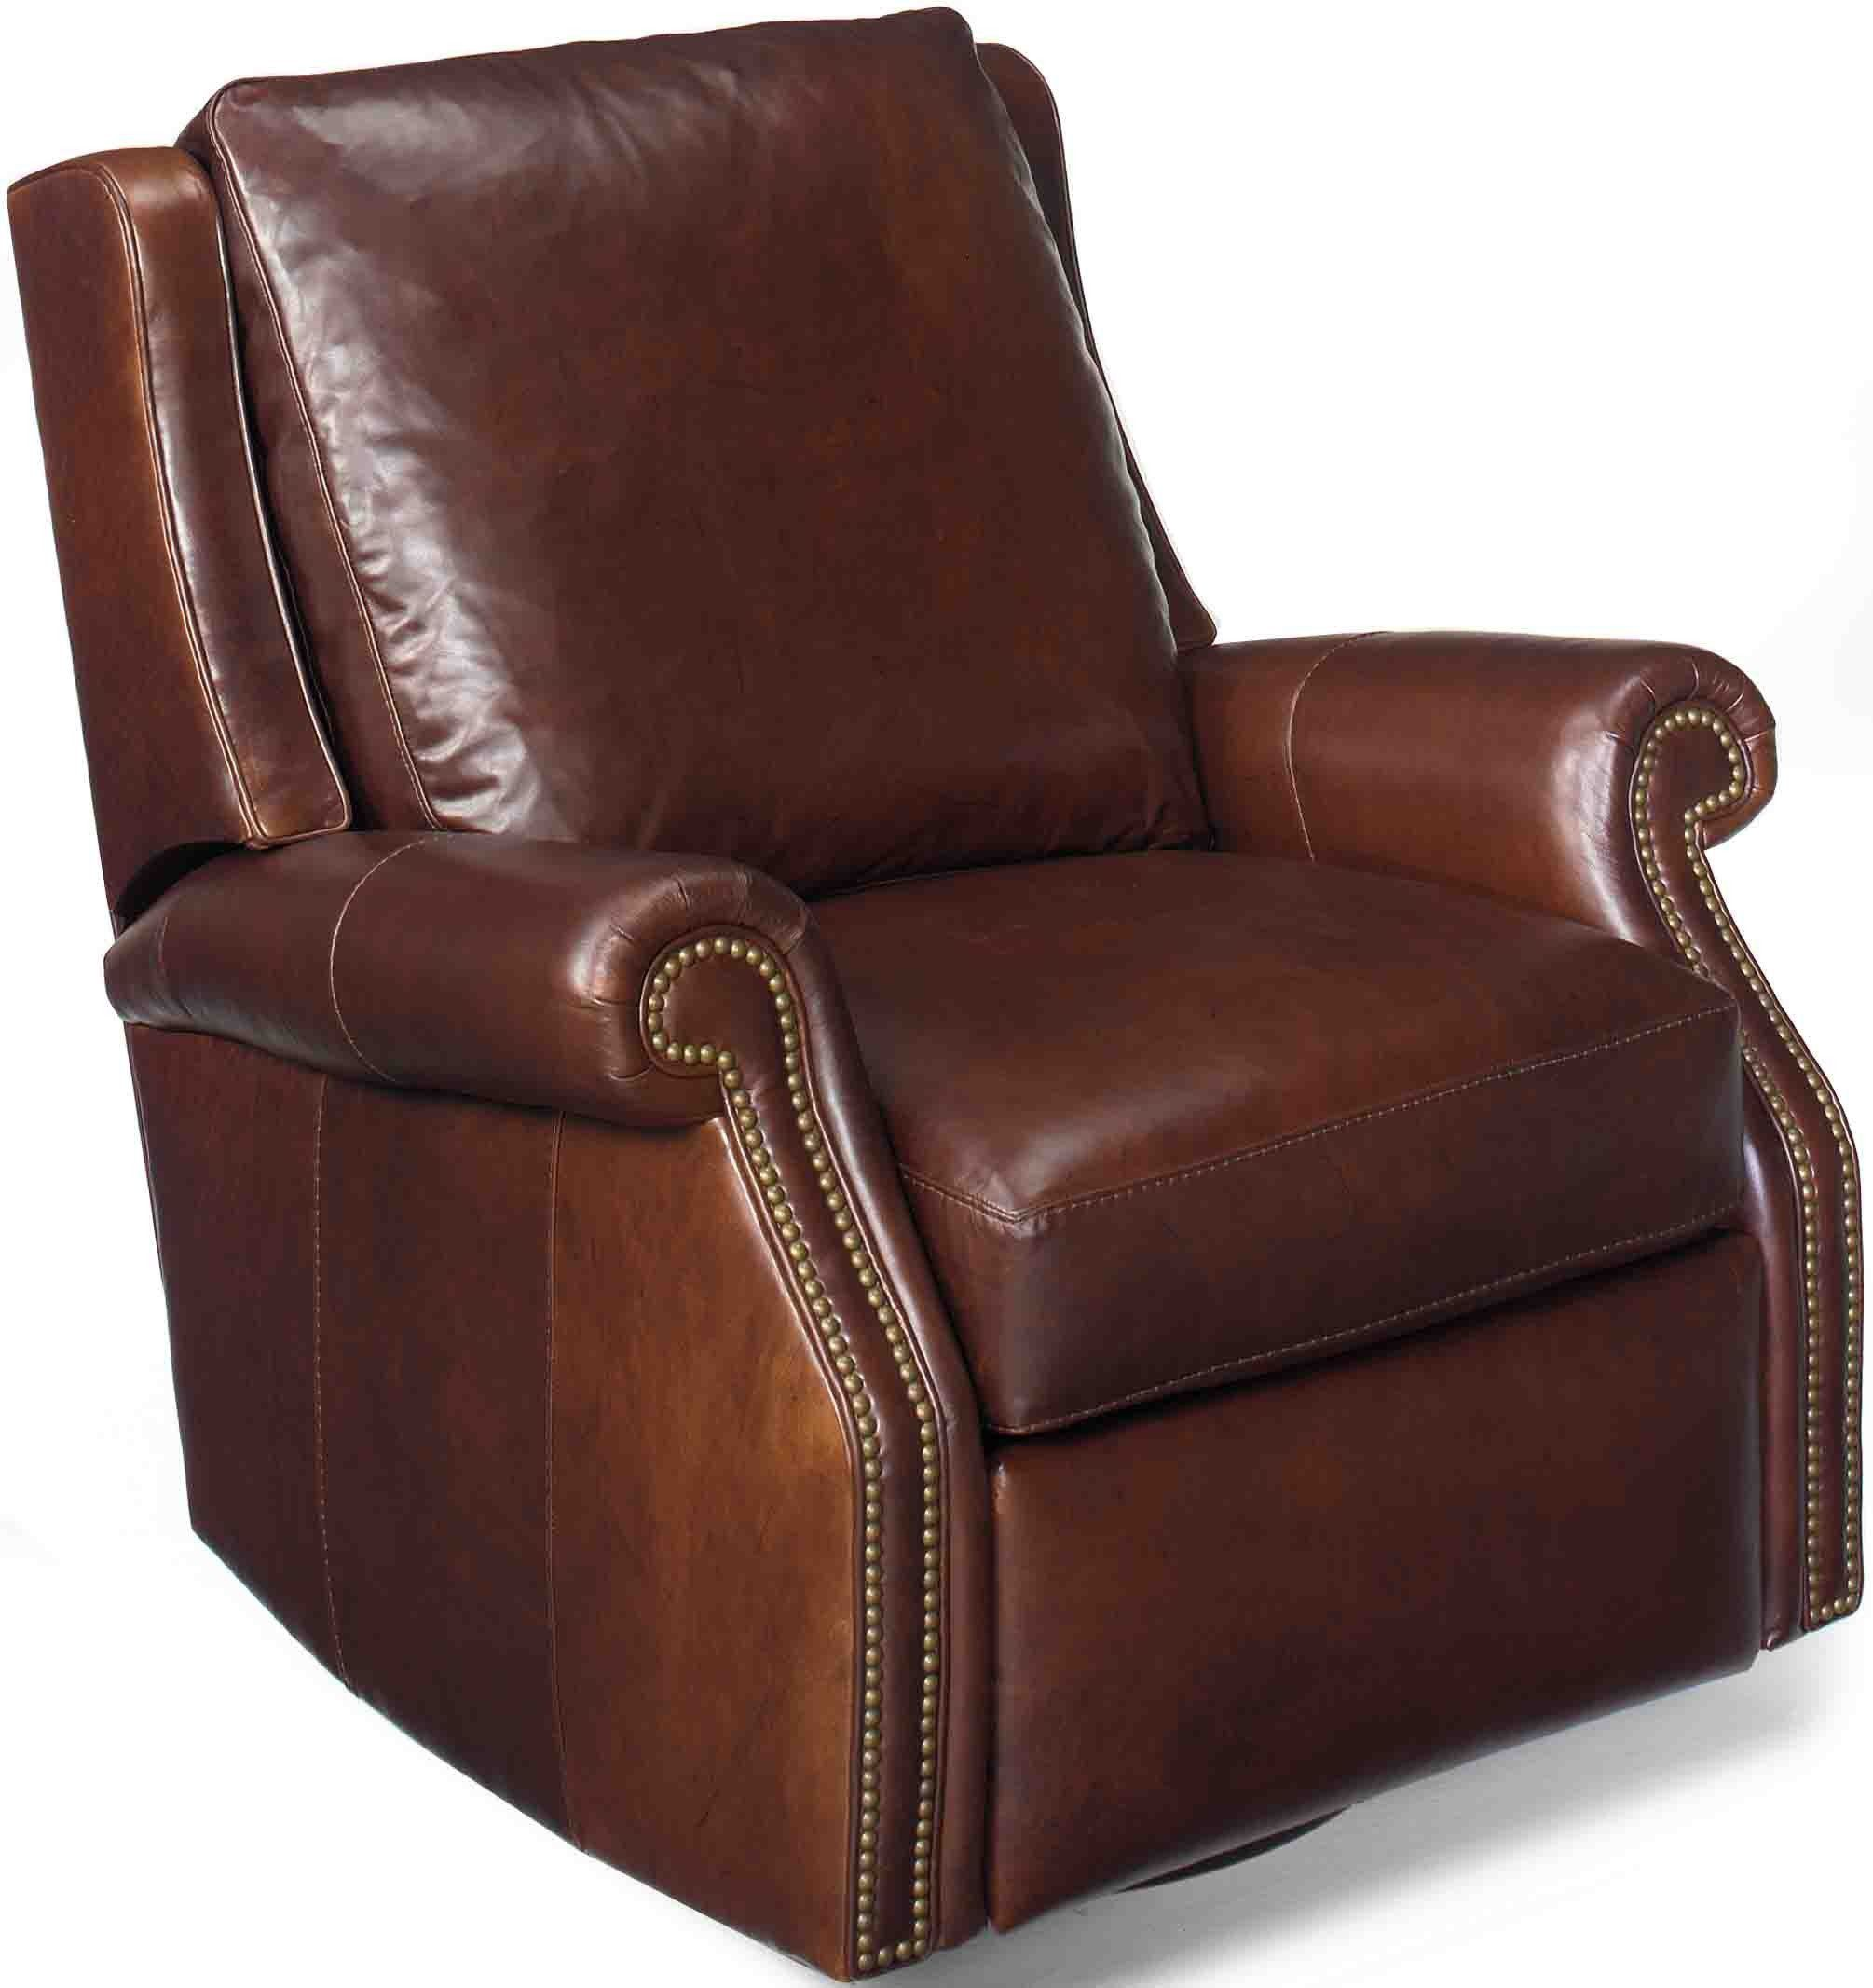 Bradington Young Barcelo Swivel Glider Recliner By 7411 Sg Wall